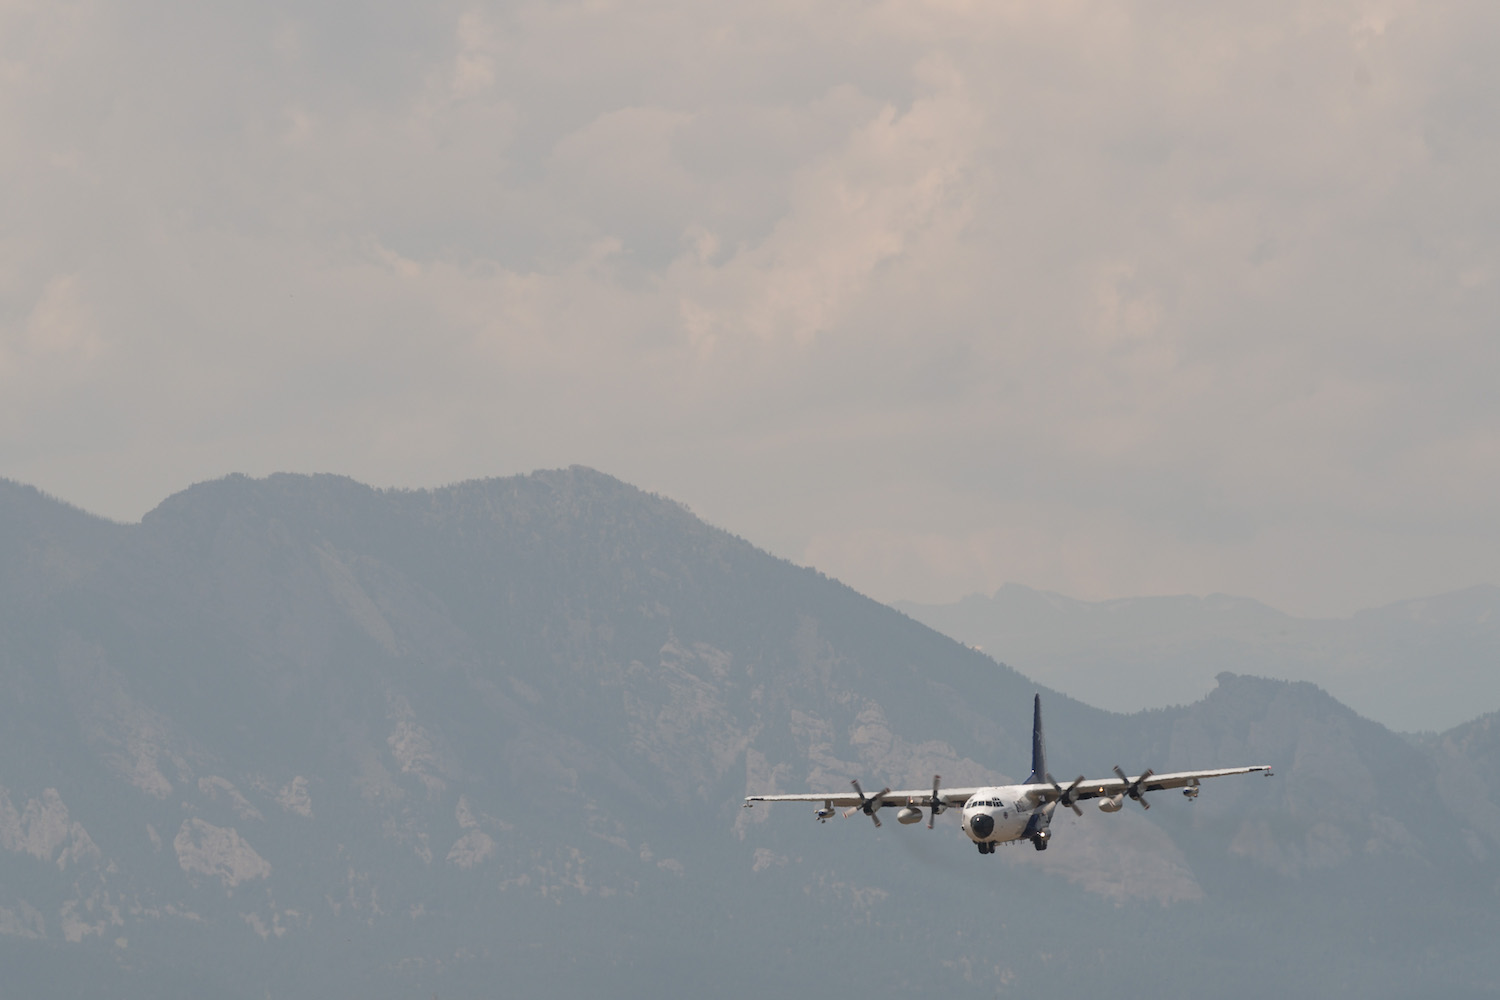 a large propellor plane against the backdrop of smoky mountains